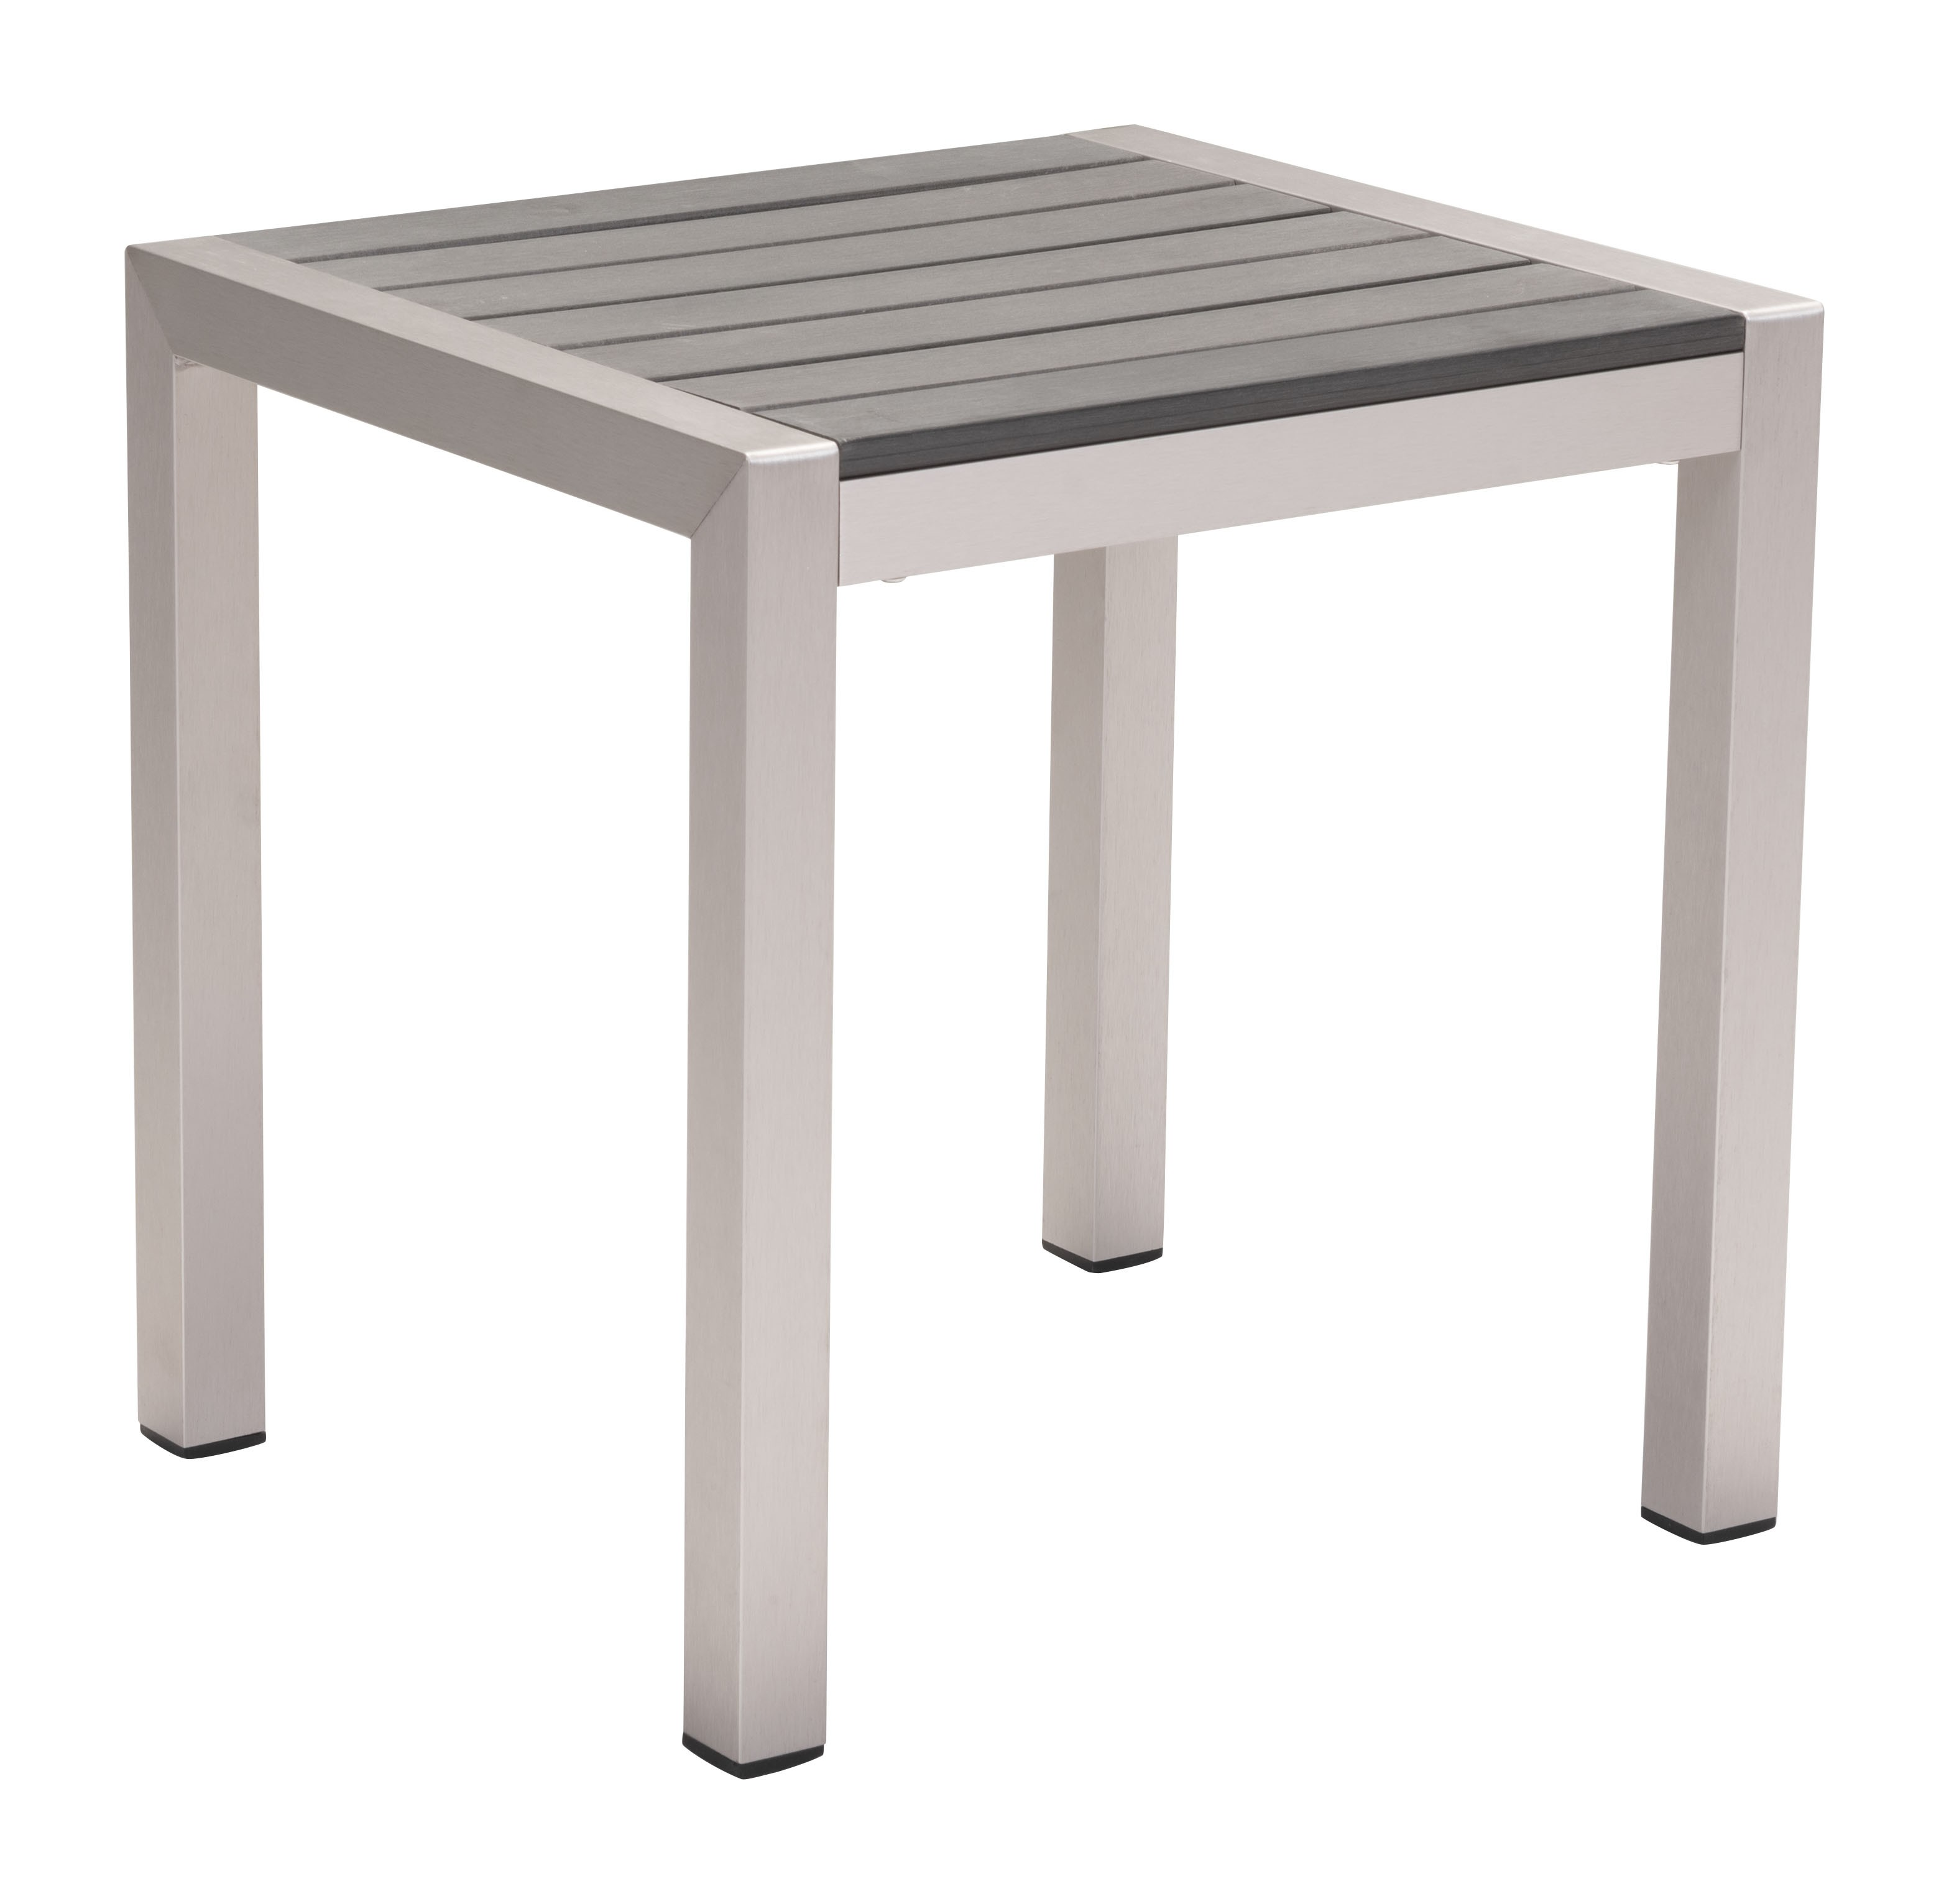 carly indoor outdoor side table gray aluminum grey small cabinet legs dining and chairs clearance narrow mirrored bedside cabinets pubg settings yellow rug mcm furniture area wine